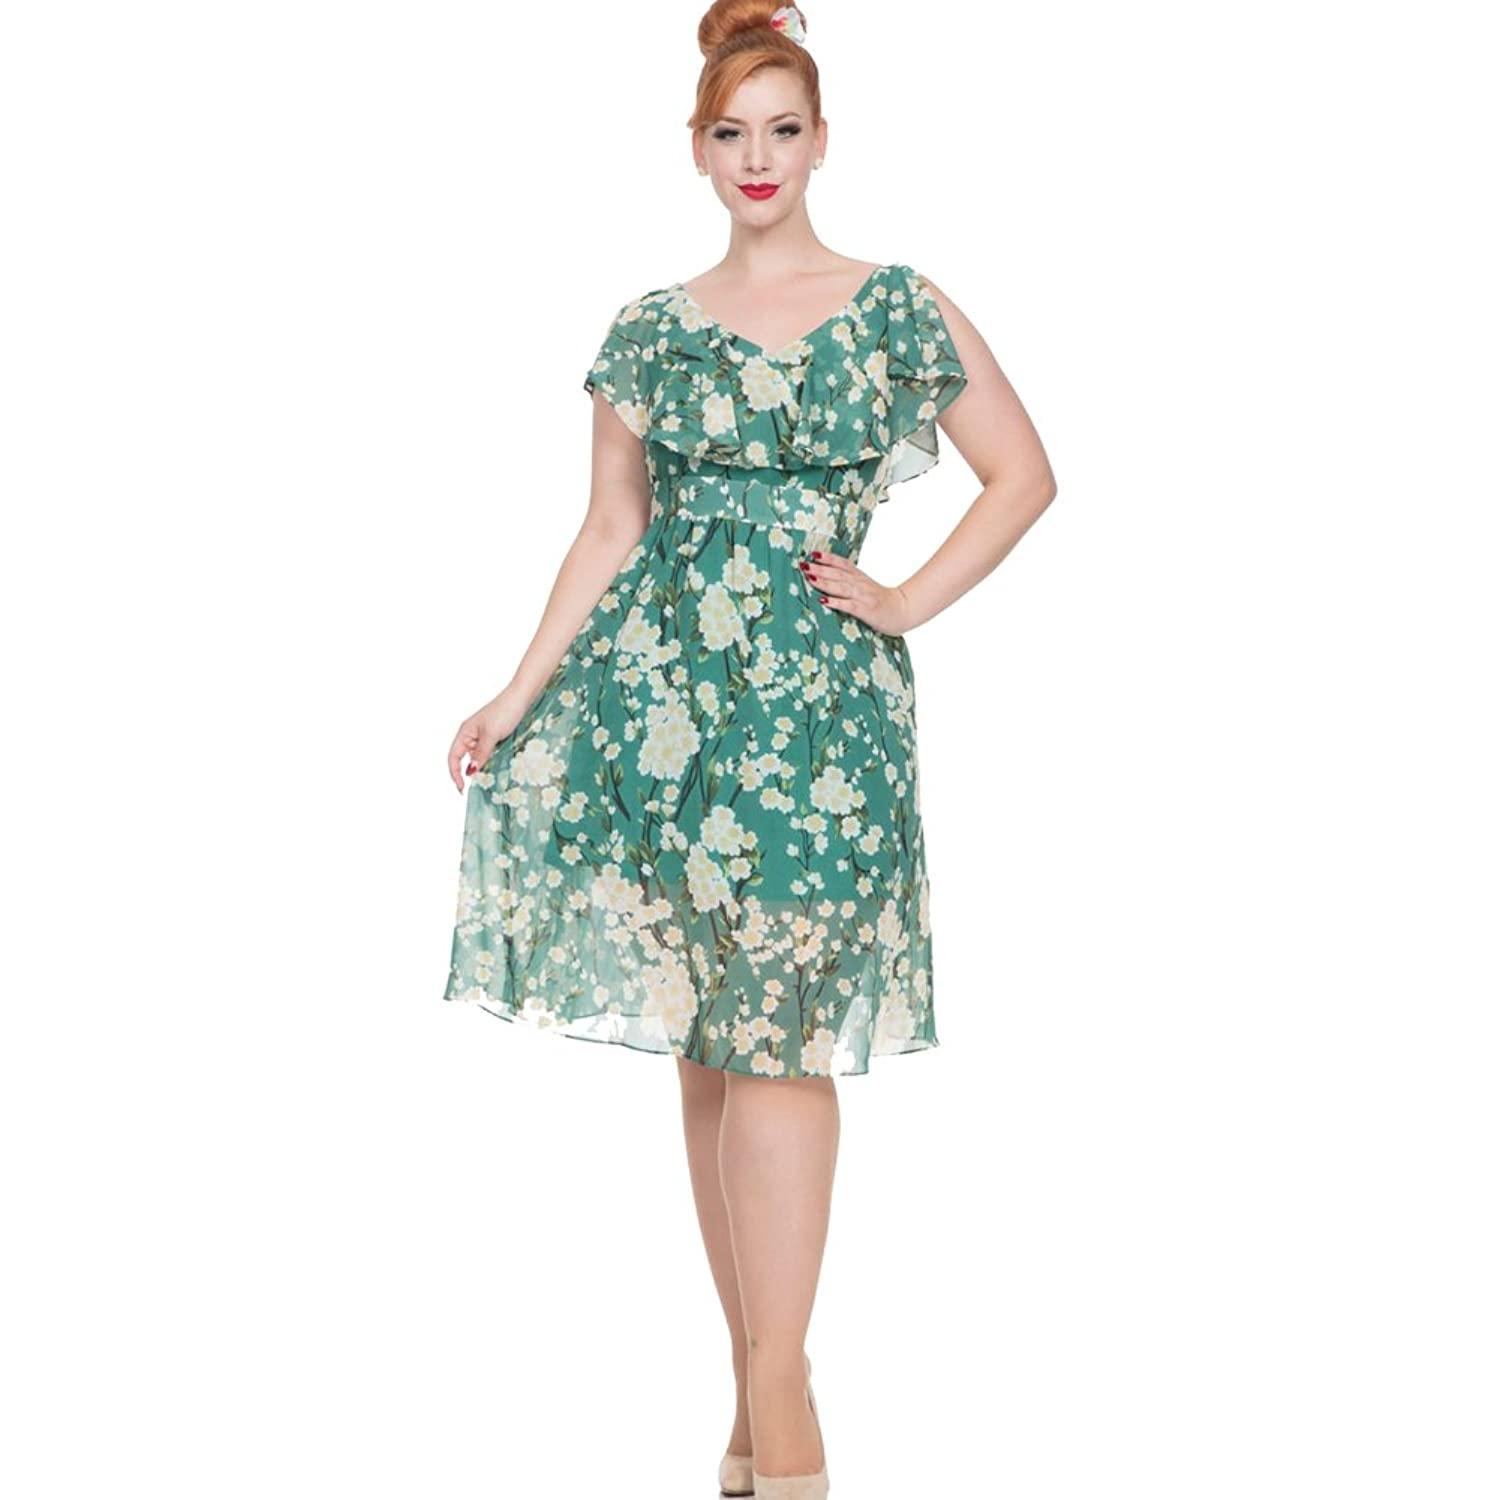 1930s Style Fashion Dresses Voodoo Vixen Agatha Blossom Floral Chiffon Flare Dress Green $62.95 AT vintagedancer.com